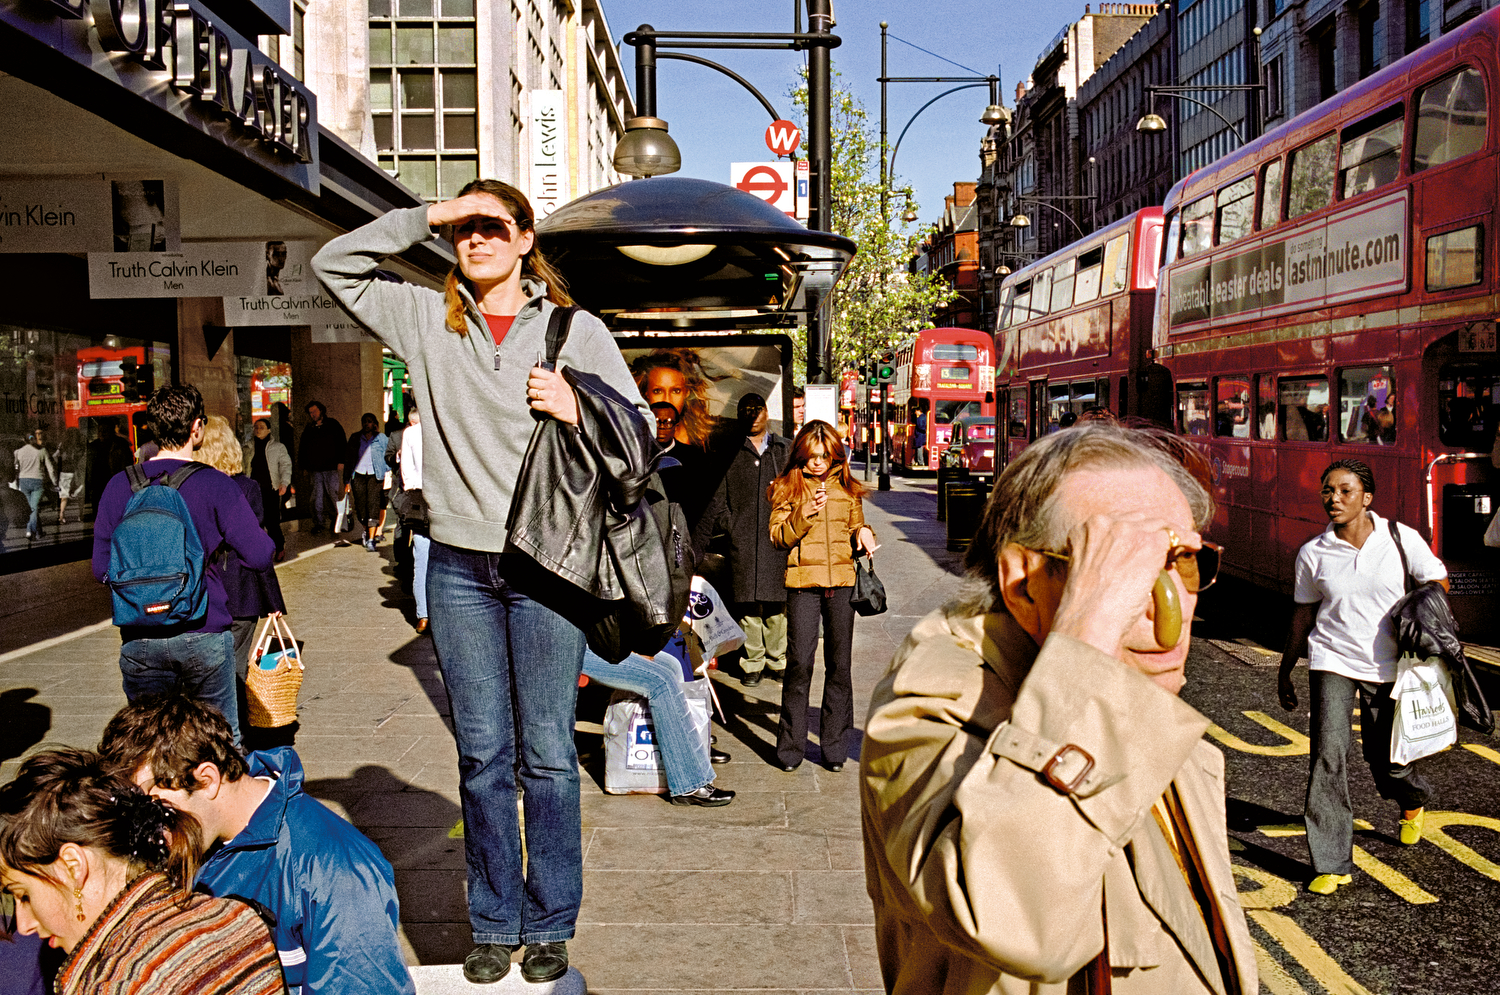 Color Street Photograph of people on Oxford Street, London by Matt Stuart